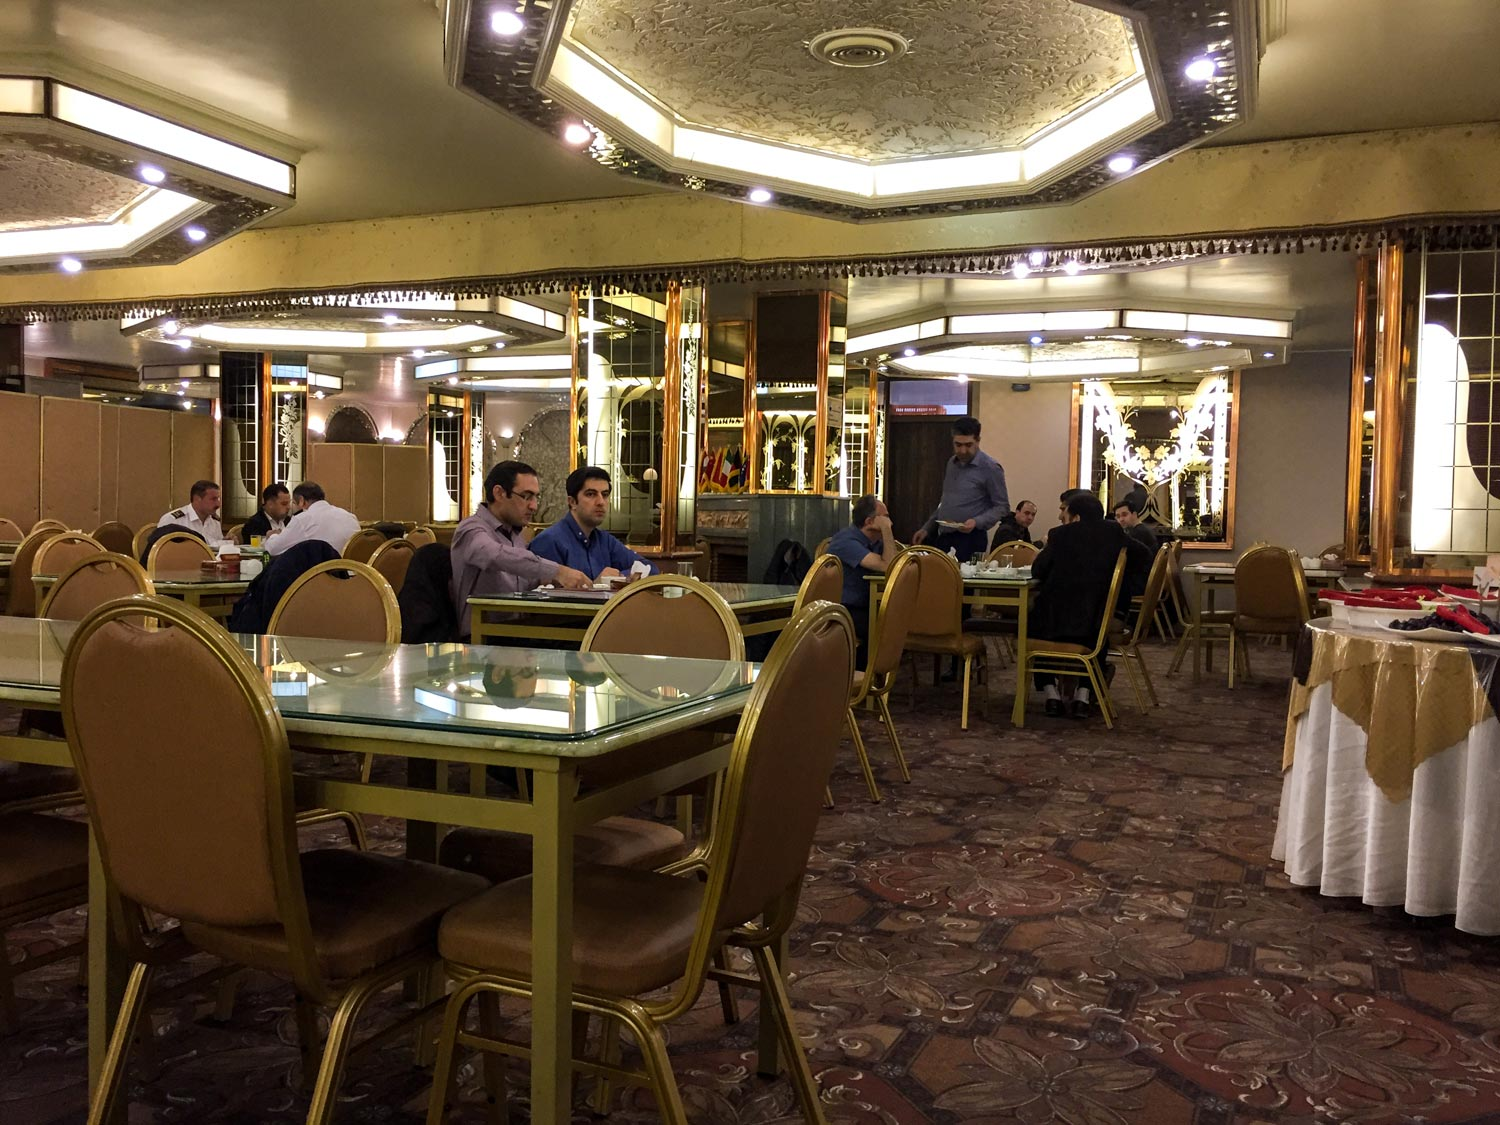 Setareh Hotel Isfahan - The restaurant are was very nice and comfortable.